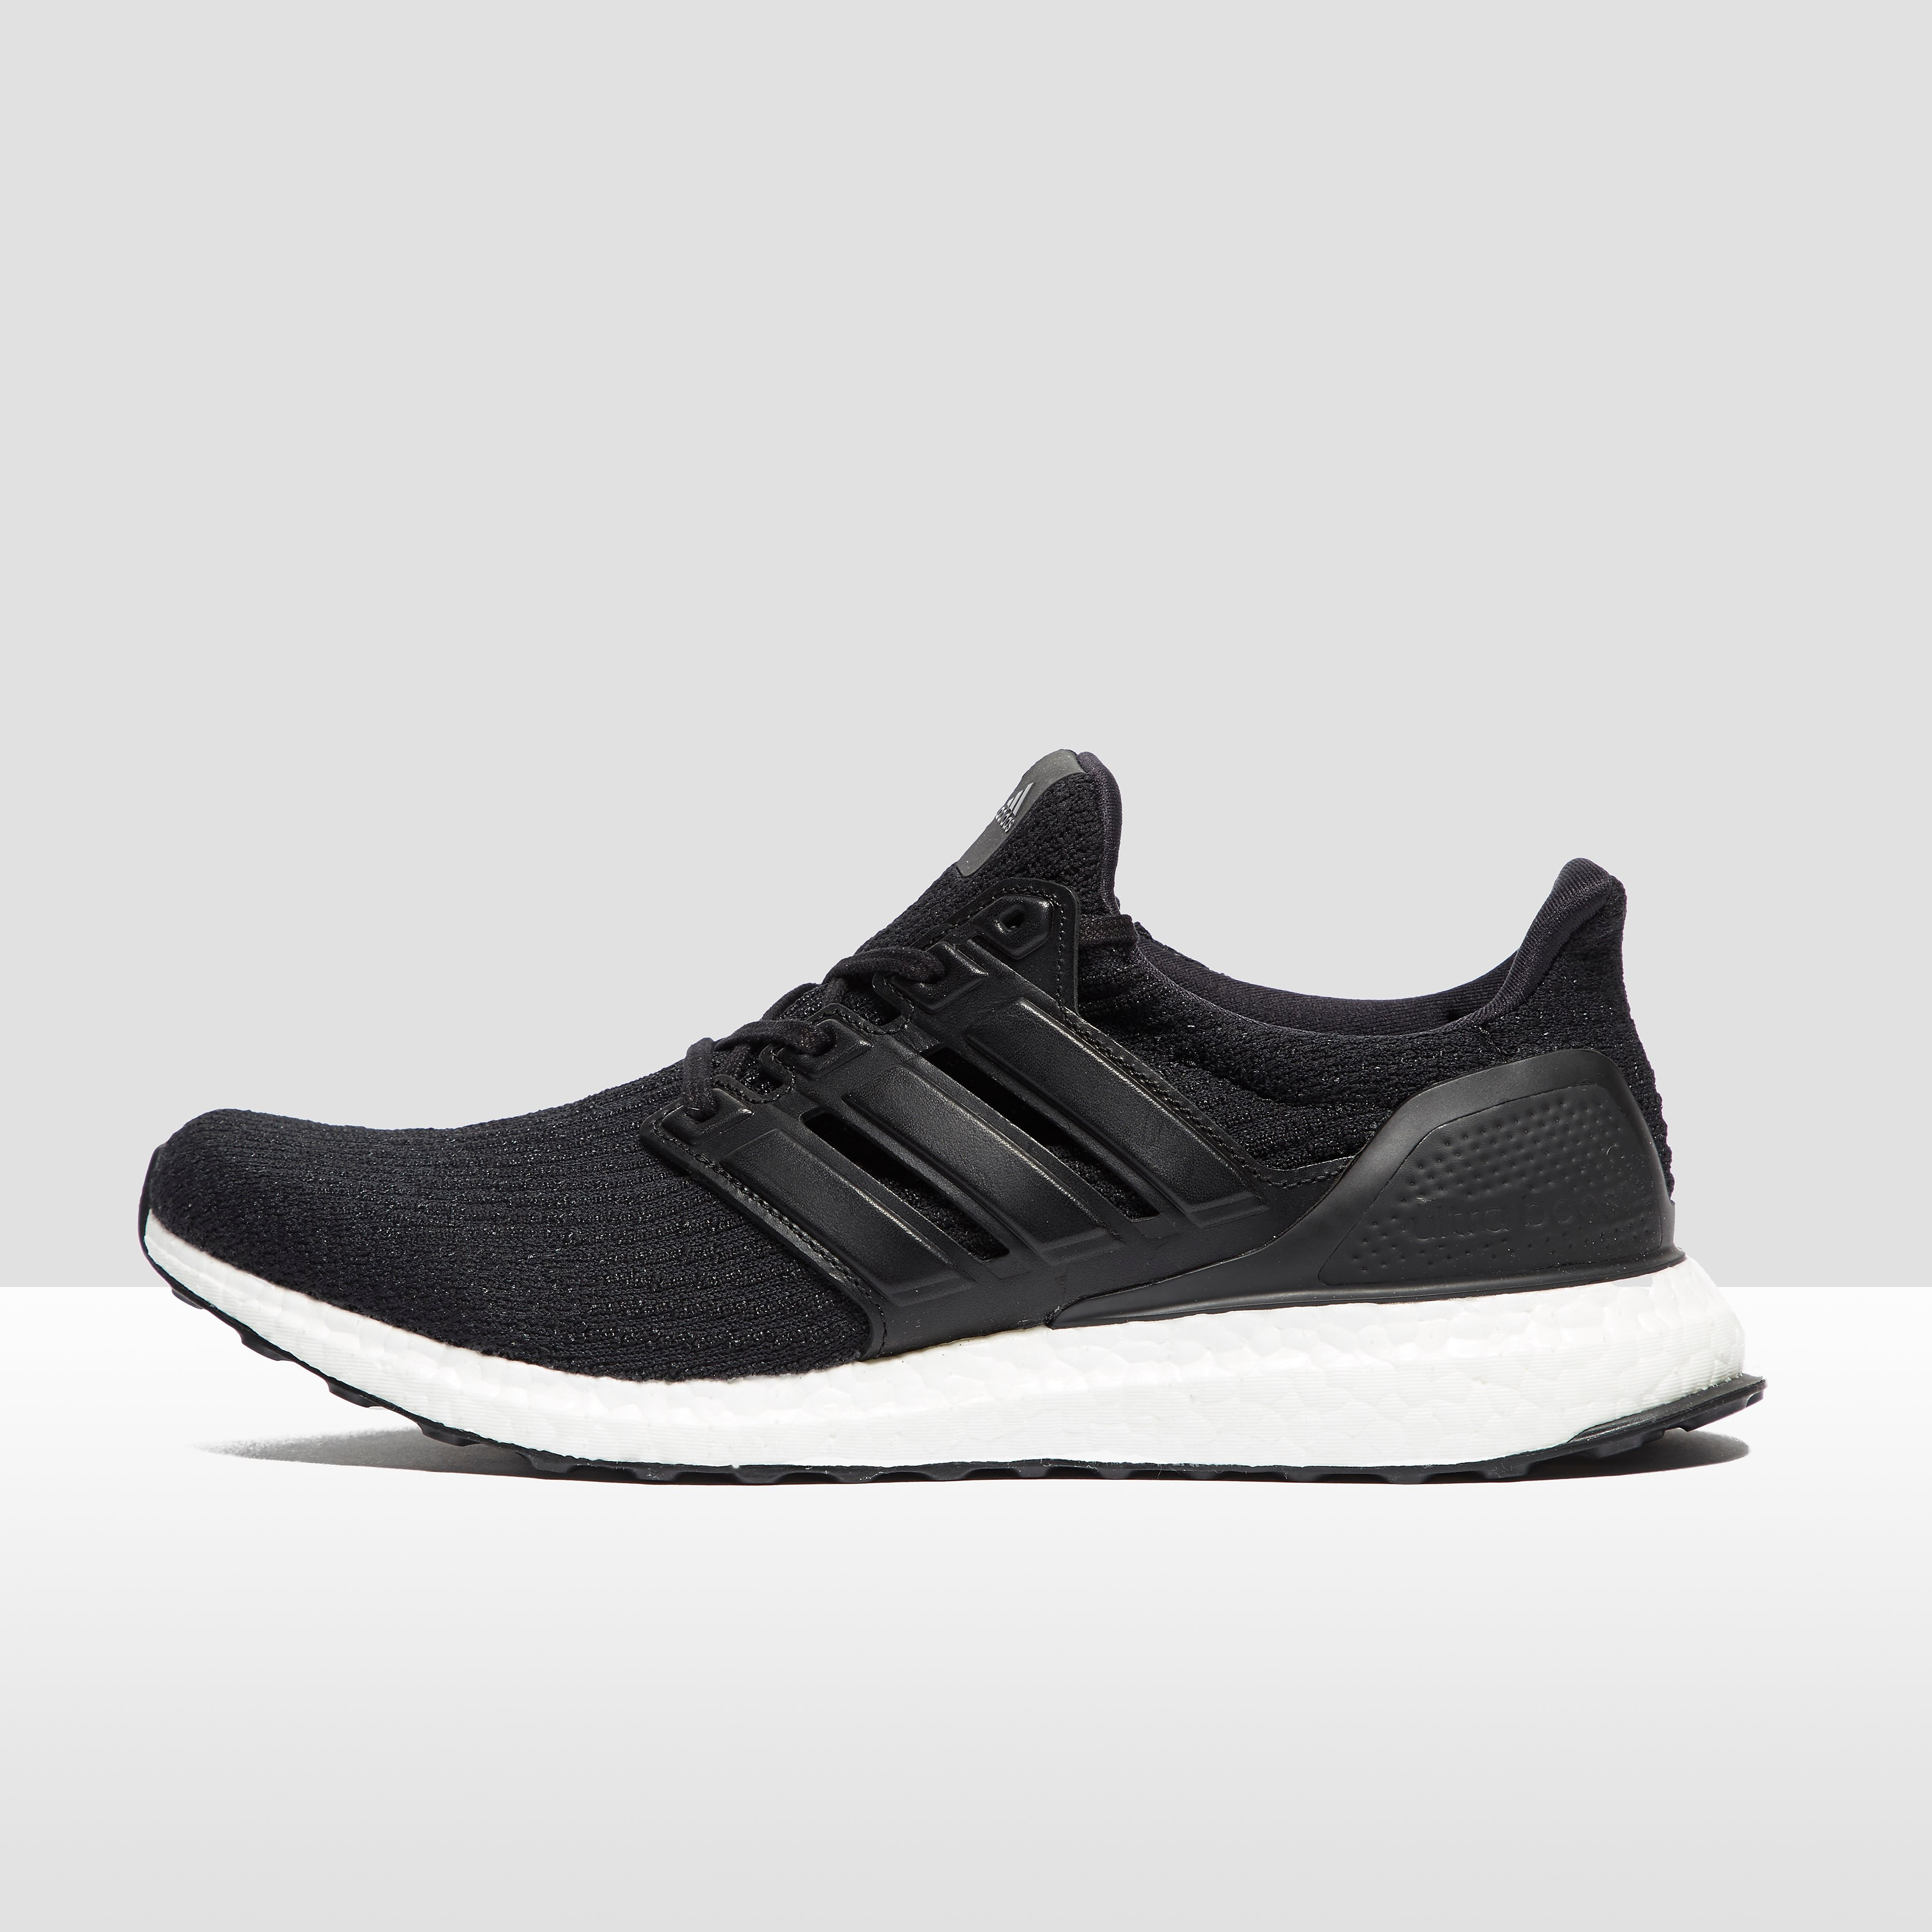 adidas Ultra Boost Limited Edition Men's Running Shoes